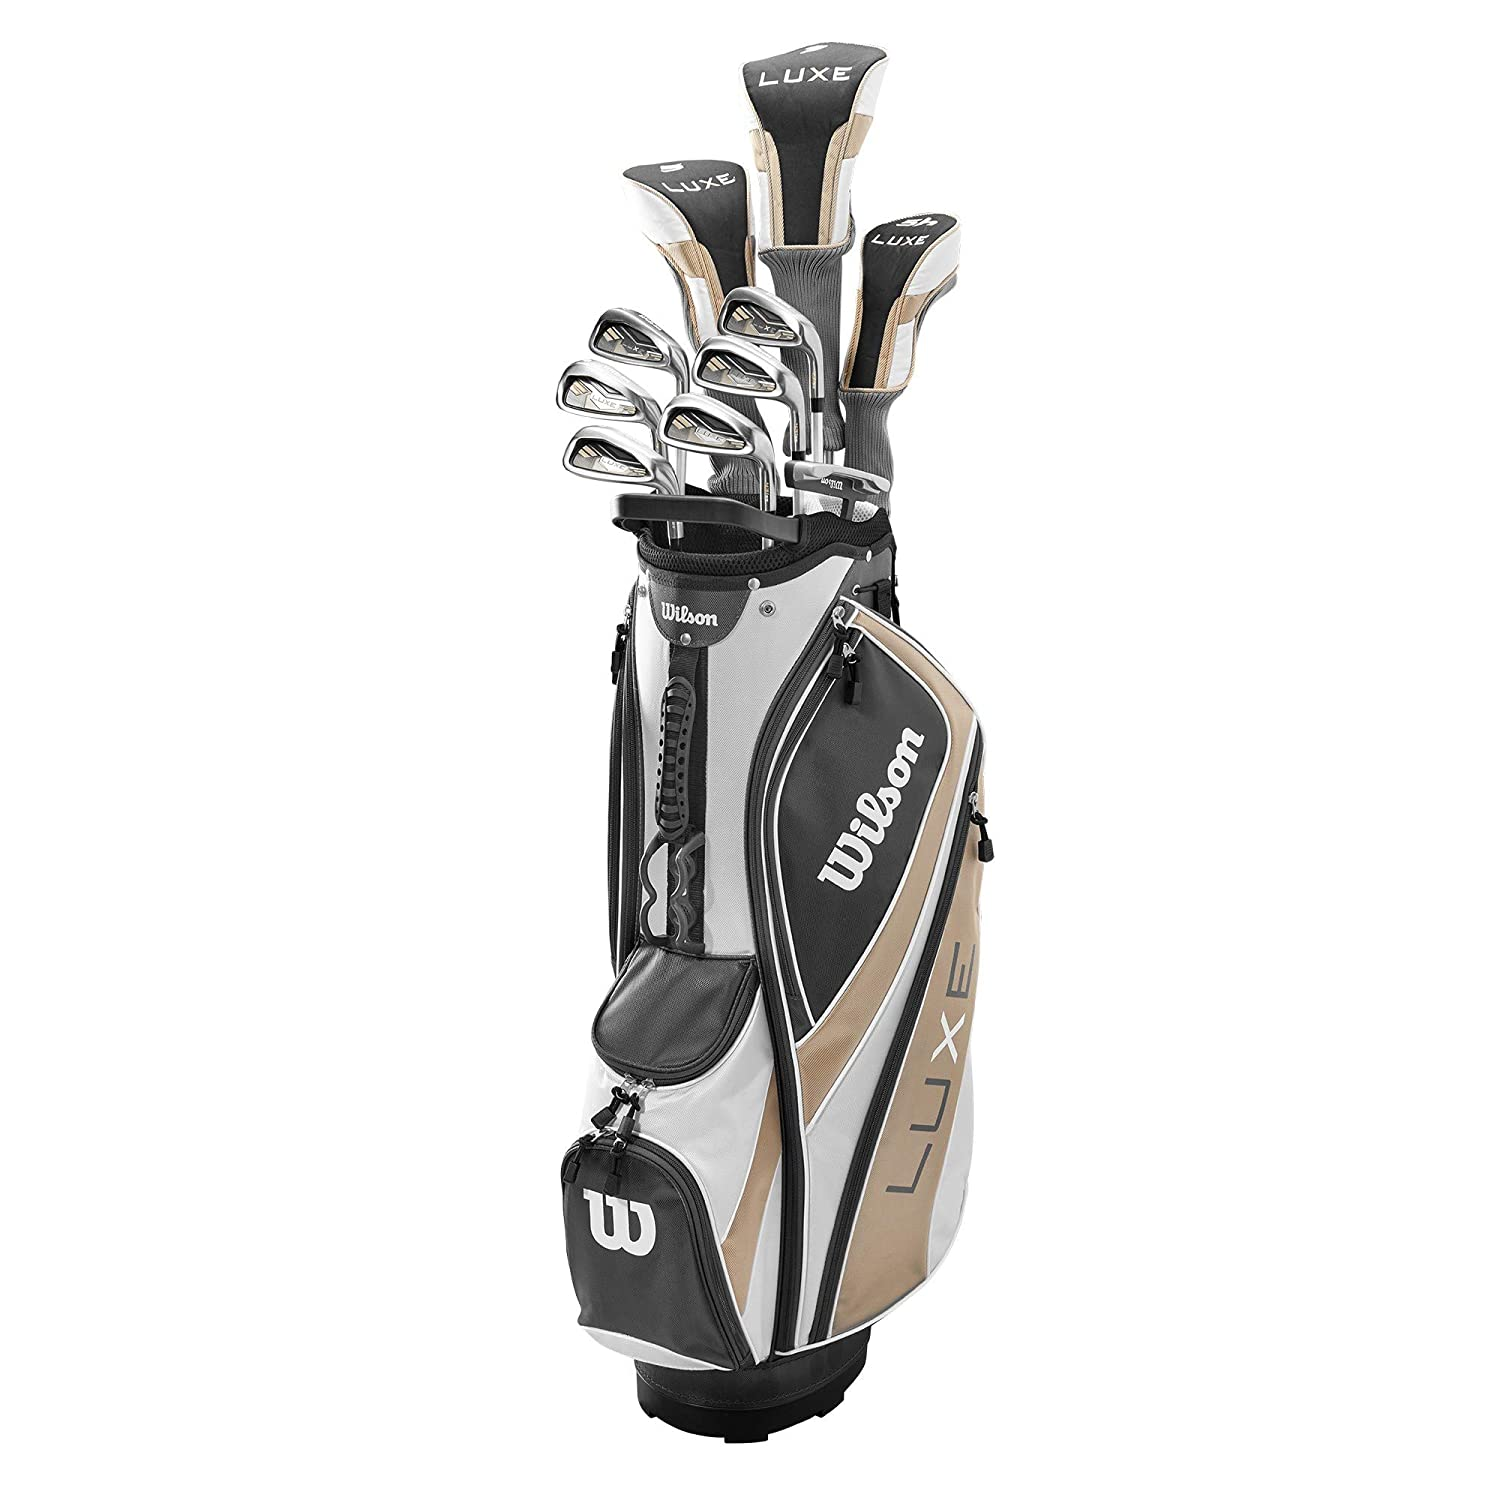 Wilson Luxe Golf Packageset レディース 右手